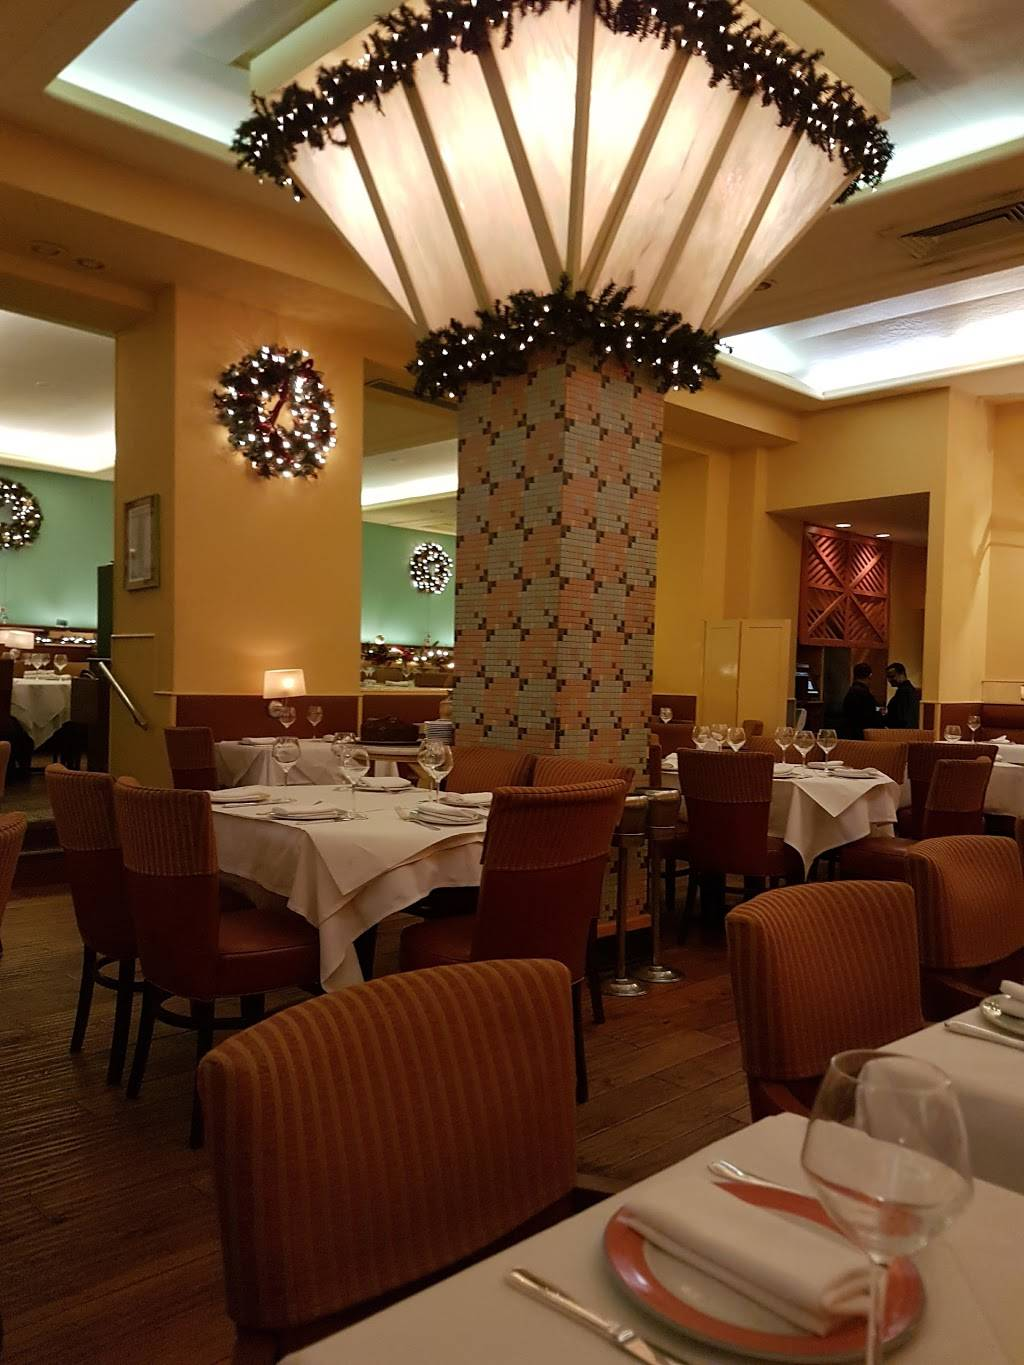 Trattoria DellArte | restaurant | 900 7th Ave, New York, NY 10106, USA | 2122459800 OR +1 212-245-9800